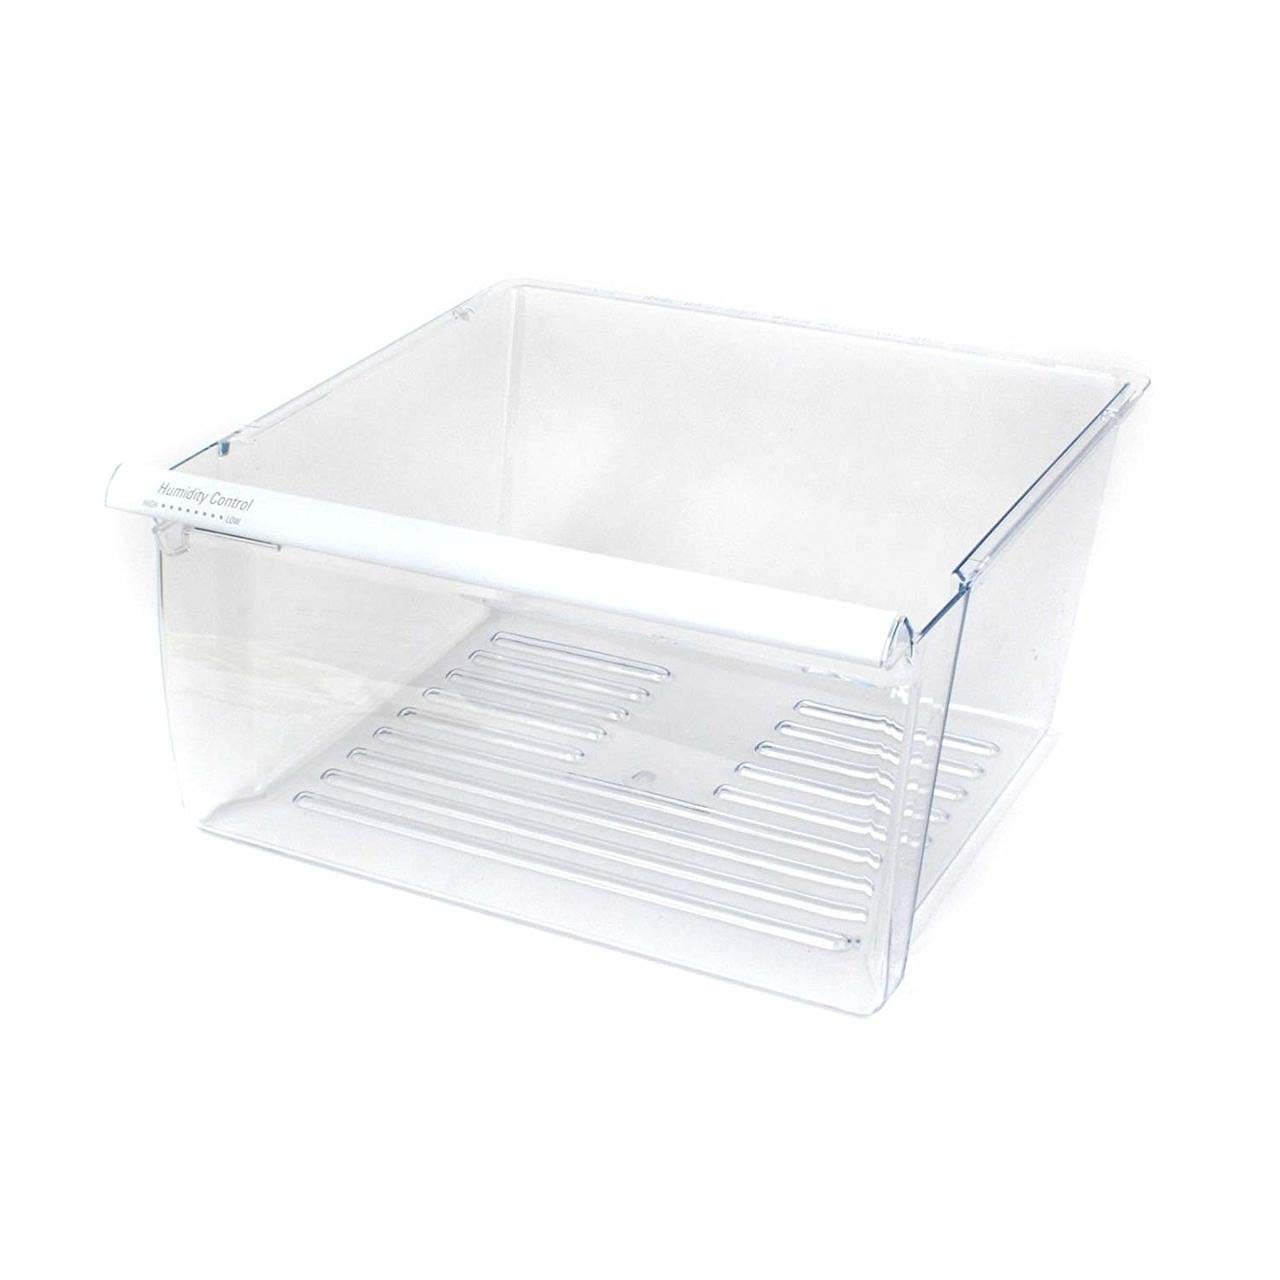 (RB) Clear Refrigerator Crisper Pan WP2188656 PS890591 for 2188656 Whirlpool